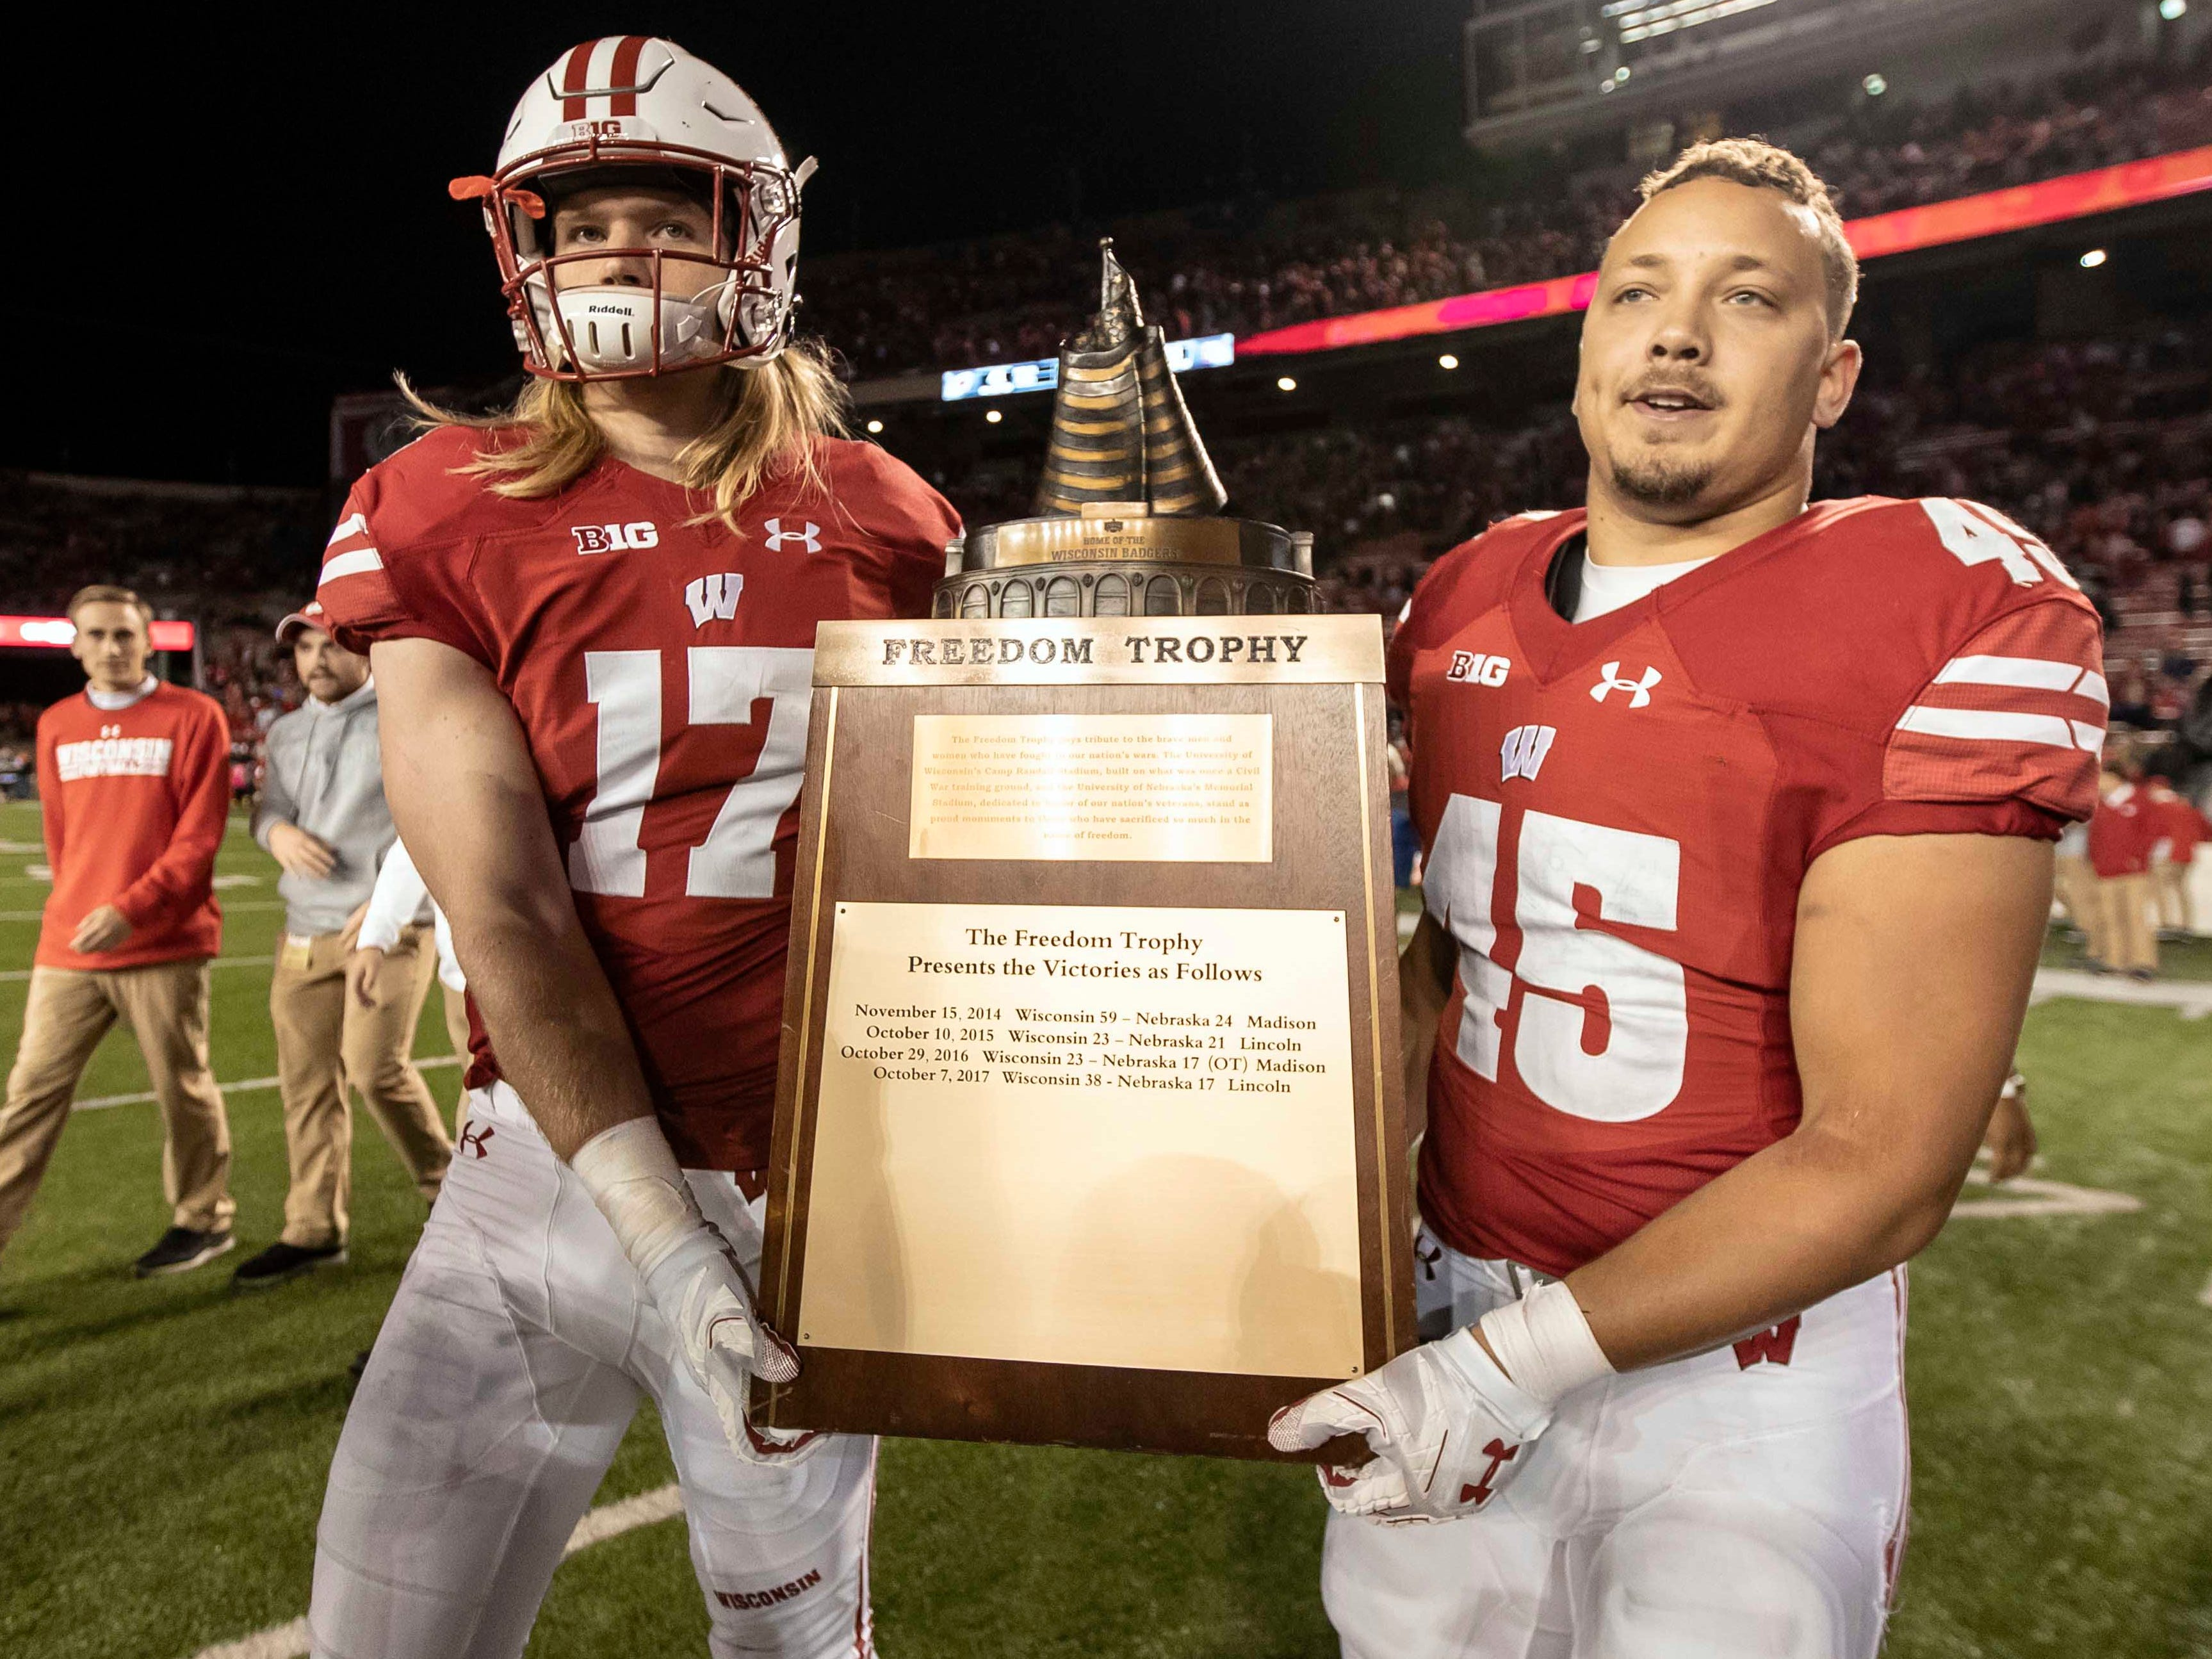 Freedom Trophy: Wisconsin linebacker Andrew Van Ginkel (17) and fullback Alec Ingold (45) carry the Freedom Trophy after a 41-24 win over Nebraska  at Camp Randall Stadium on Oct. 6.